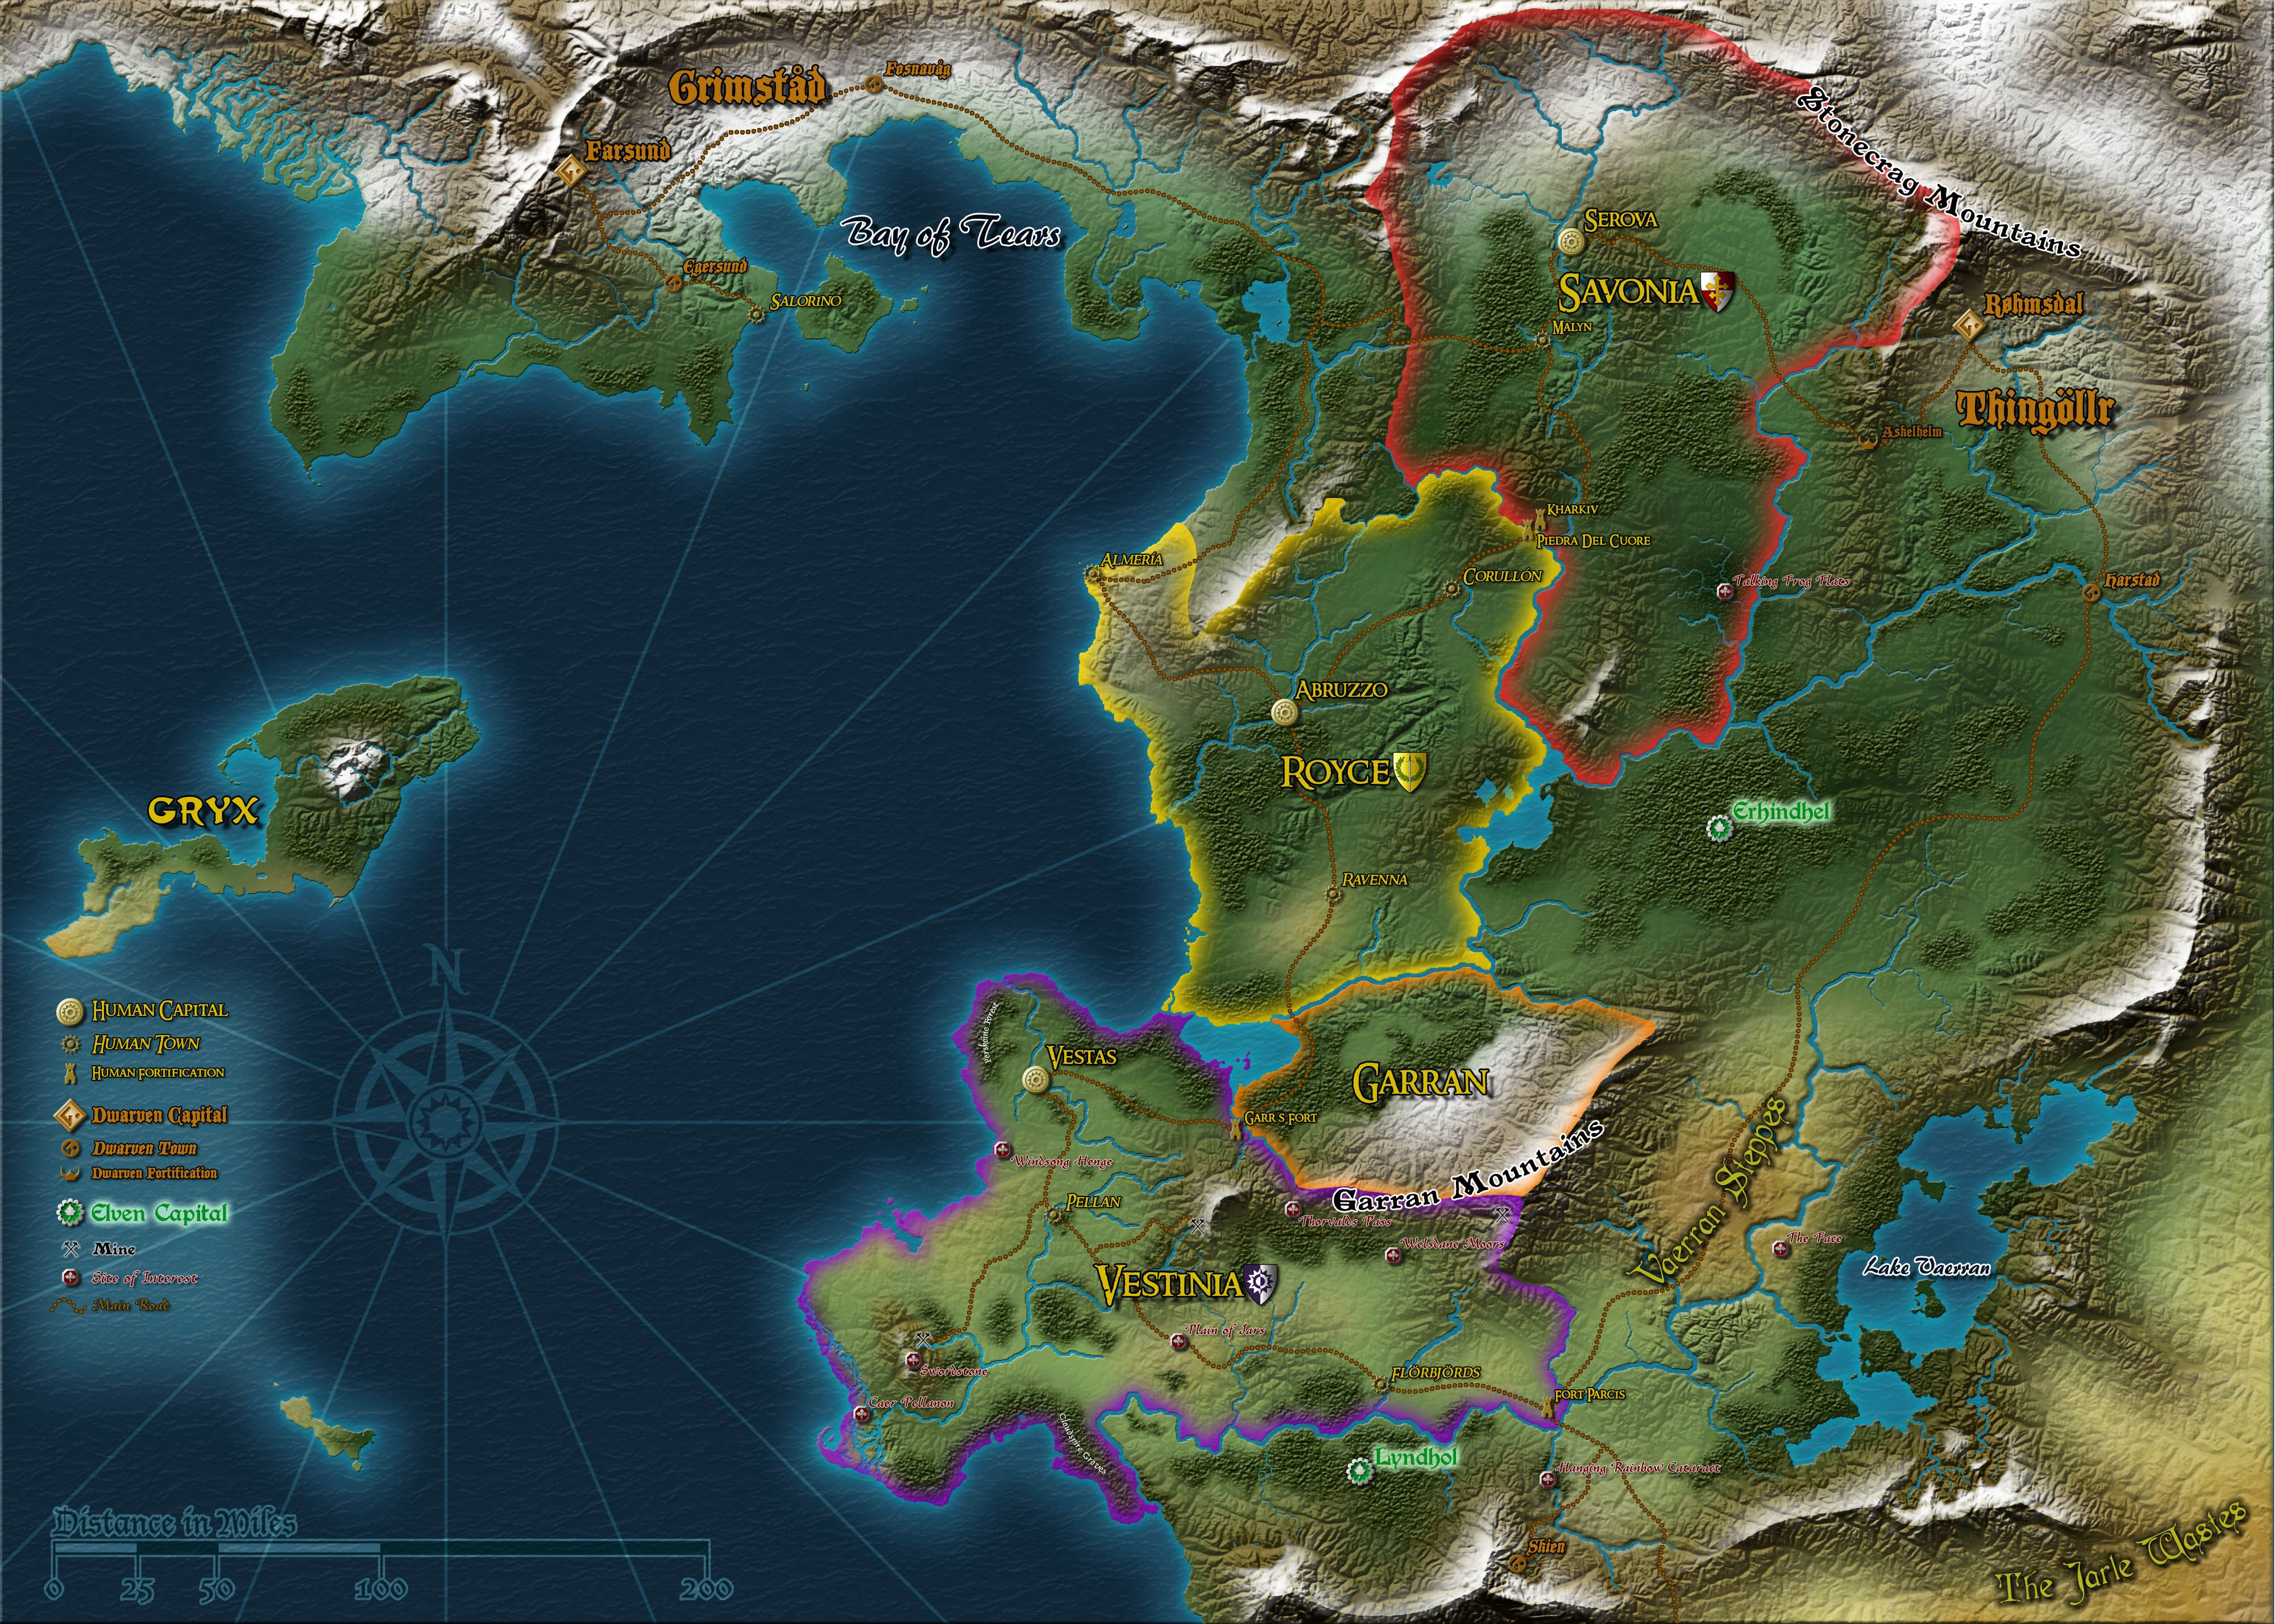 Pin by suzanne xie on maps pinterest fantasy map alrighty heres a map of the fantasy world im developing for an upcoming harp game unnamed fantasy world map gumiabroncs Images